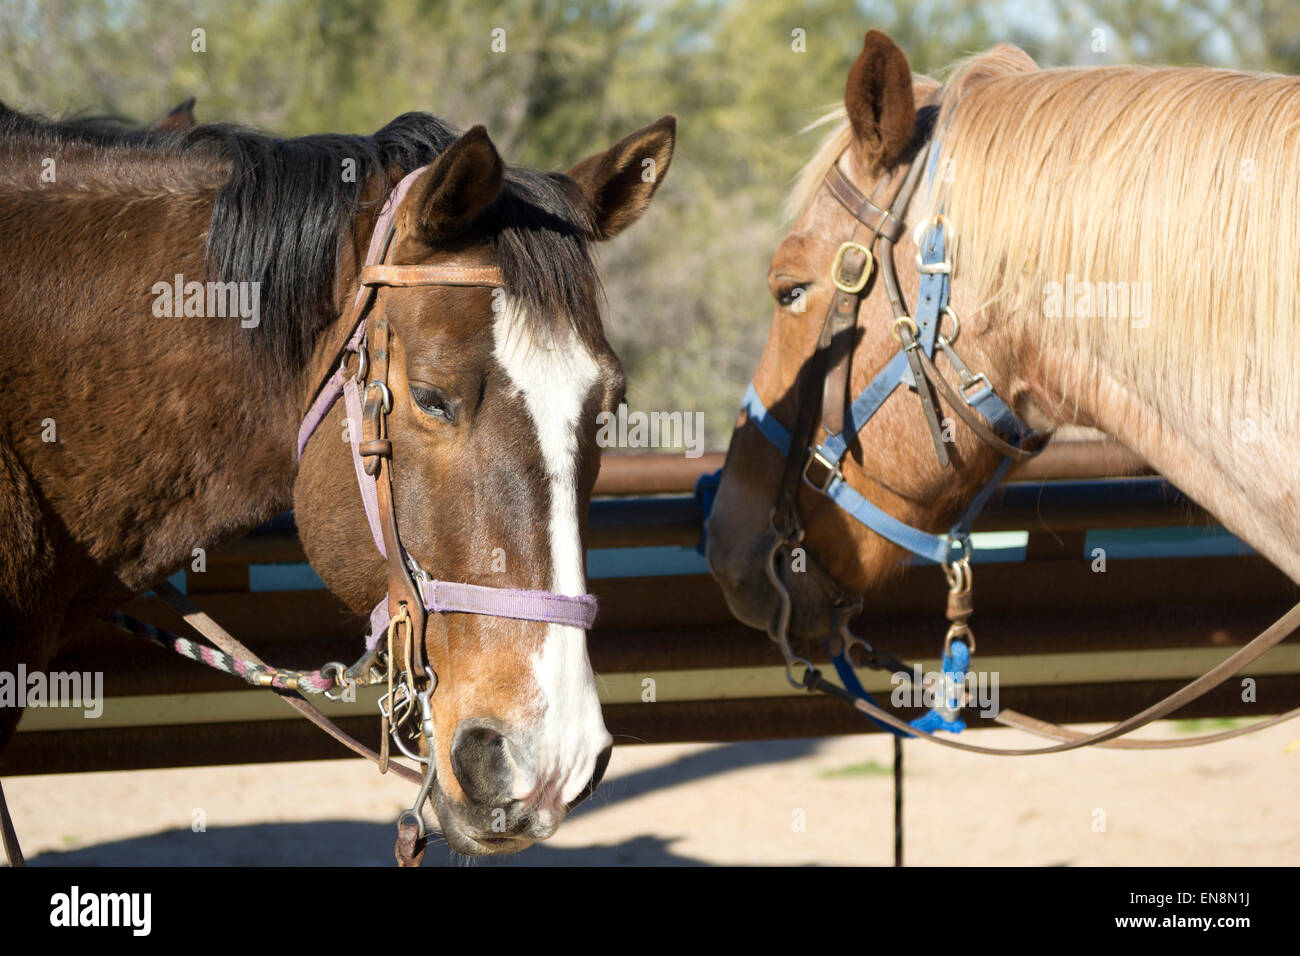 Two horses saddled and ready for a trail ride in the southwestern desert - Stock Image